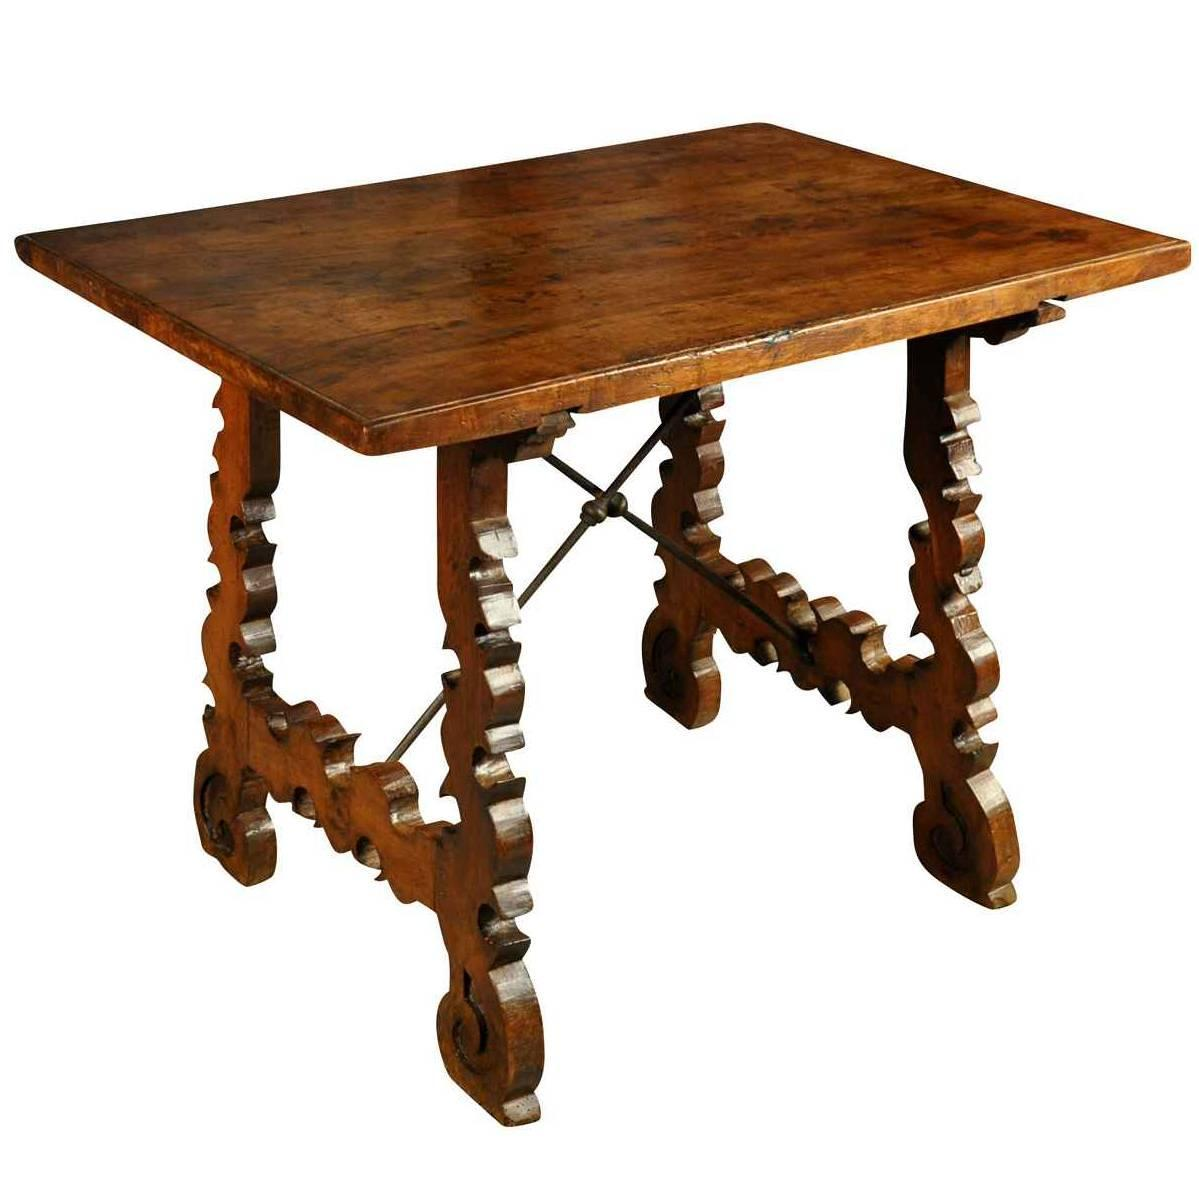 Spanish 18th century side table in walnut and iron at 1stdibs for Table in spanish